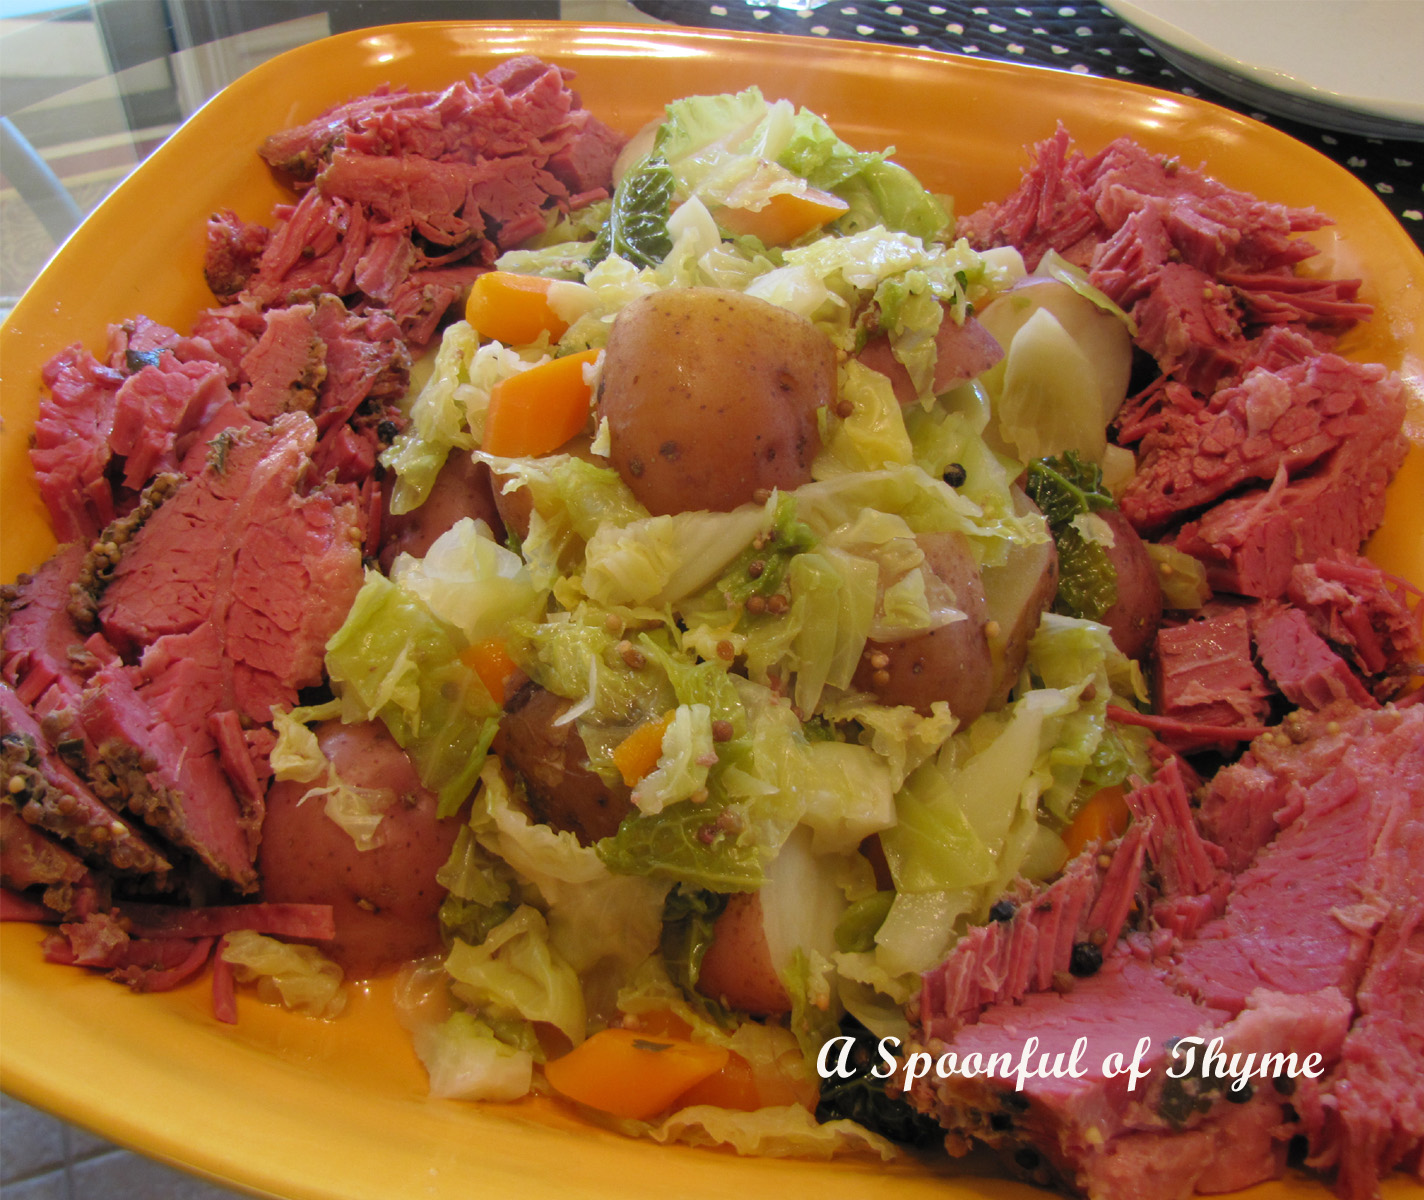 Spoonful of Thyme: Corned Beef and Cabbage